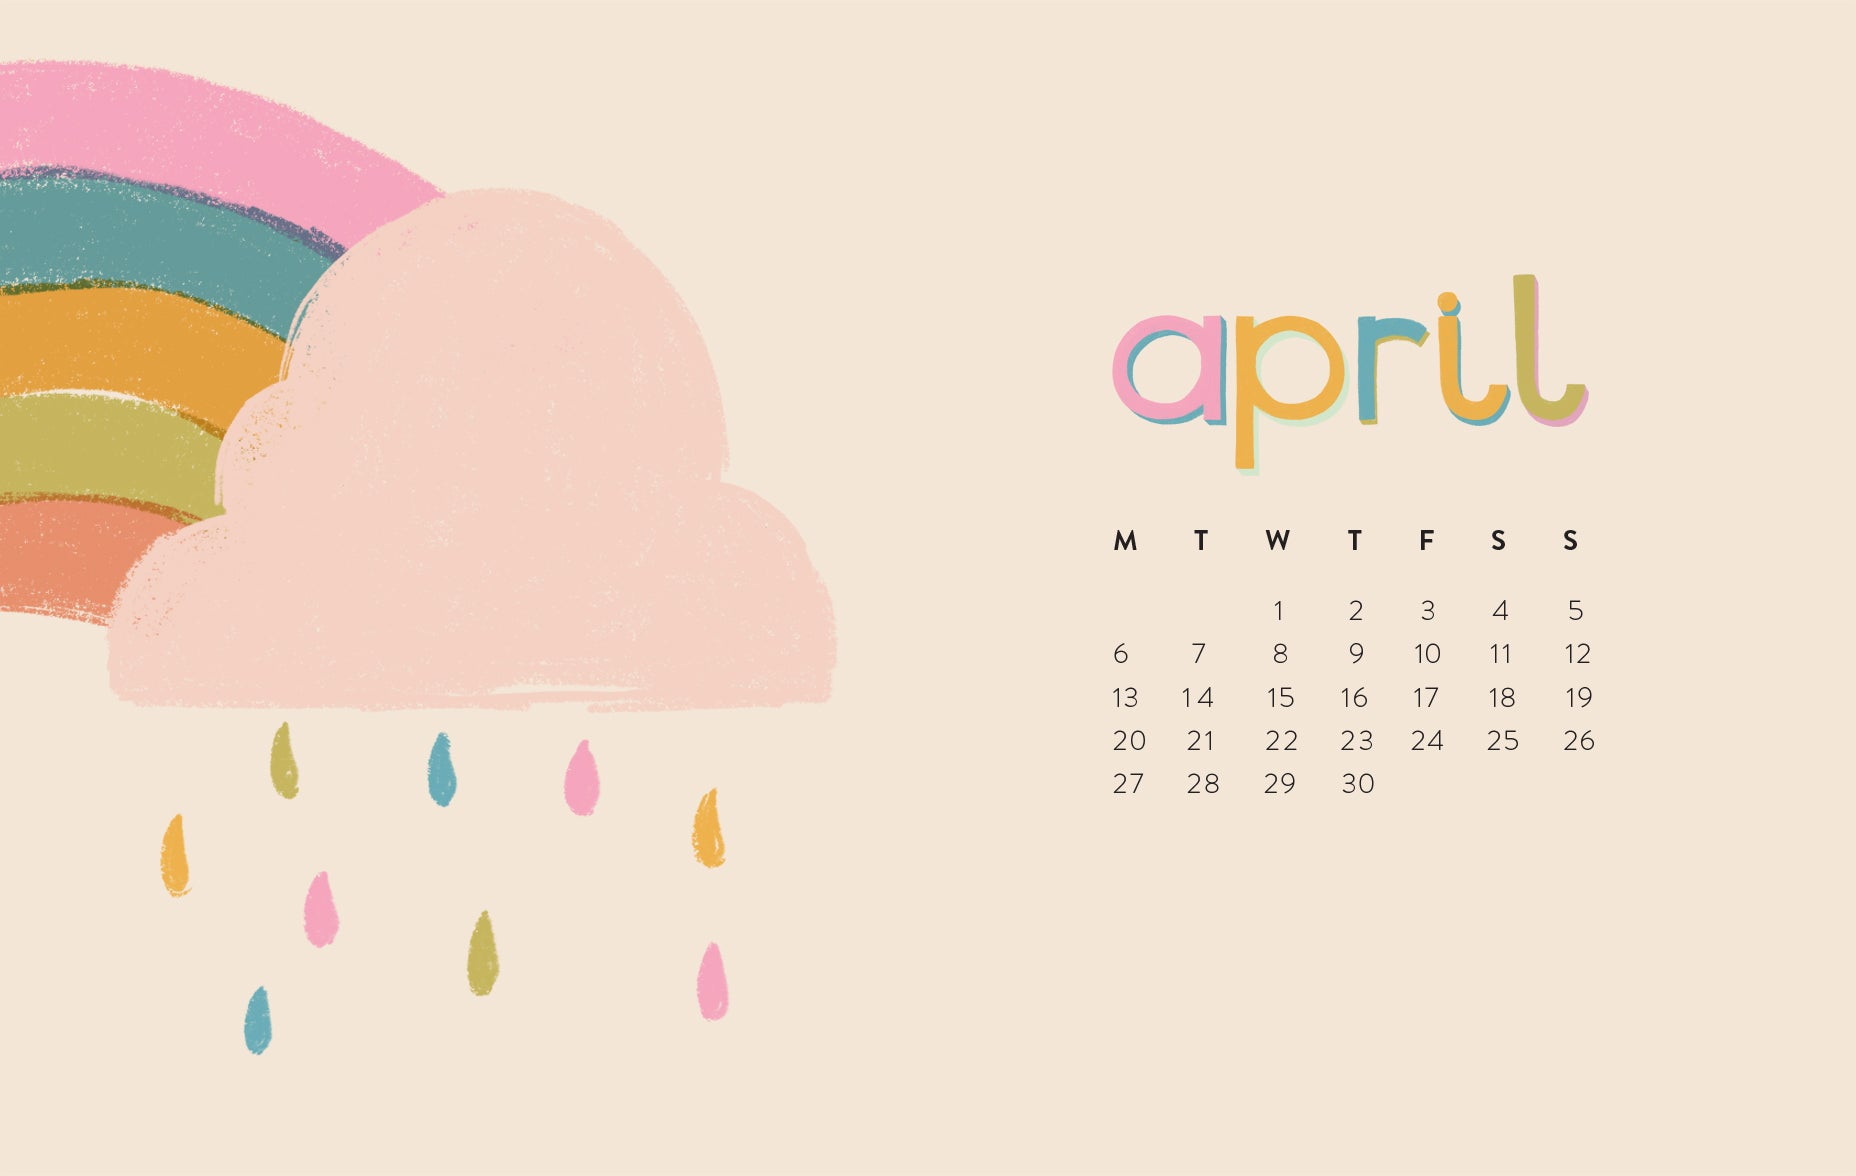 Illustrated colourful rainbow and cloud desktop wallpaper with April month calendar